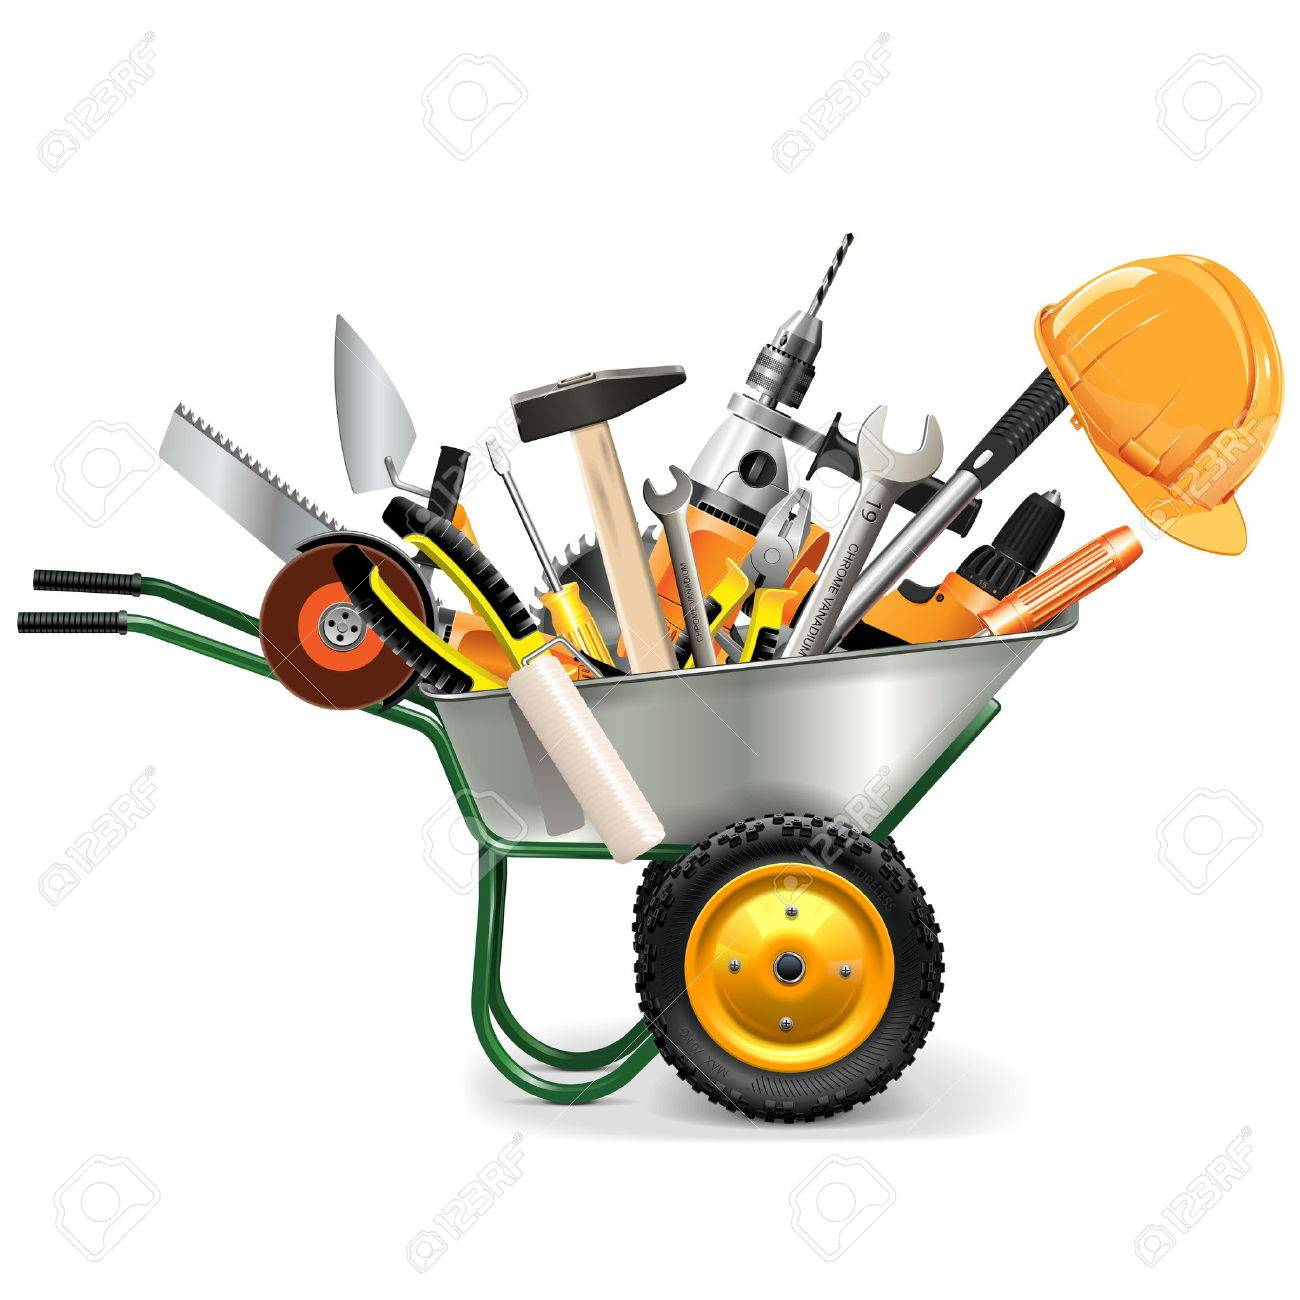 Vector Wheelbarrow with Tools isolated on white background - 44241715